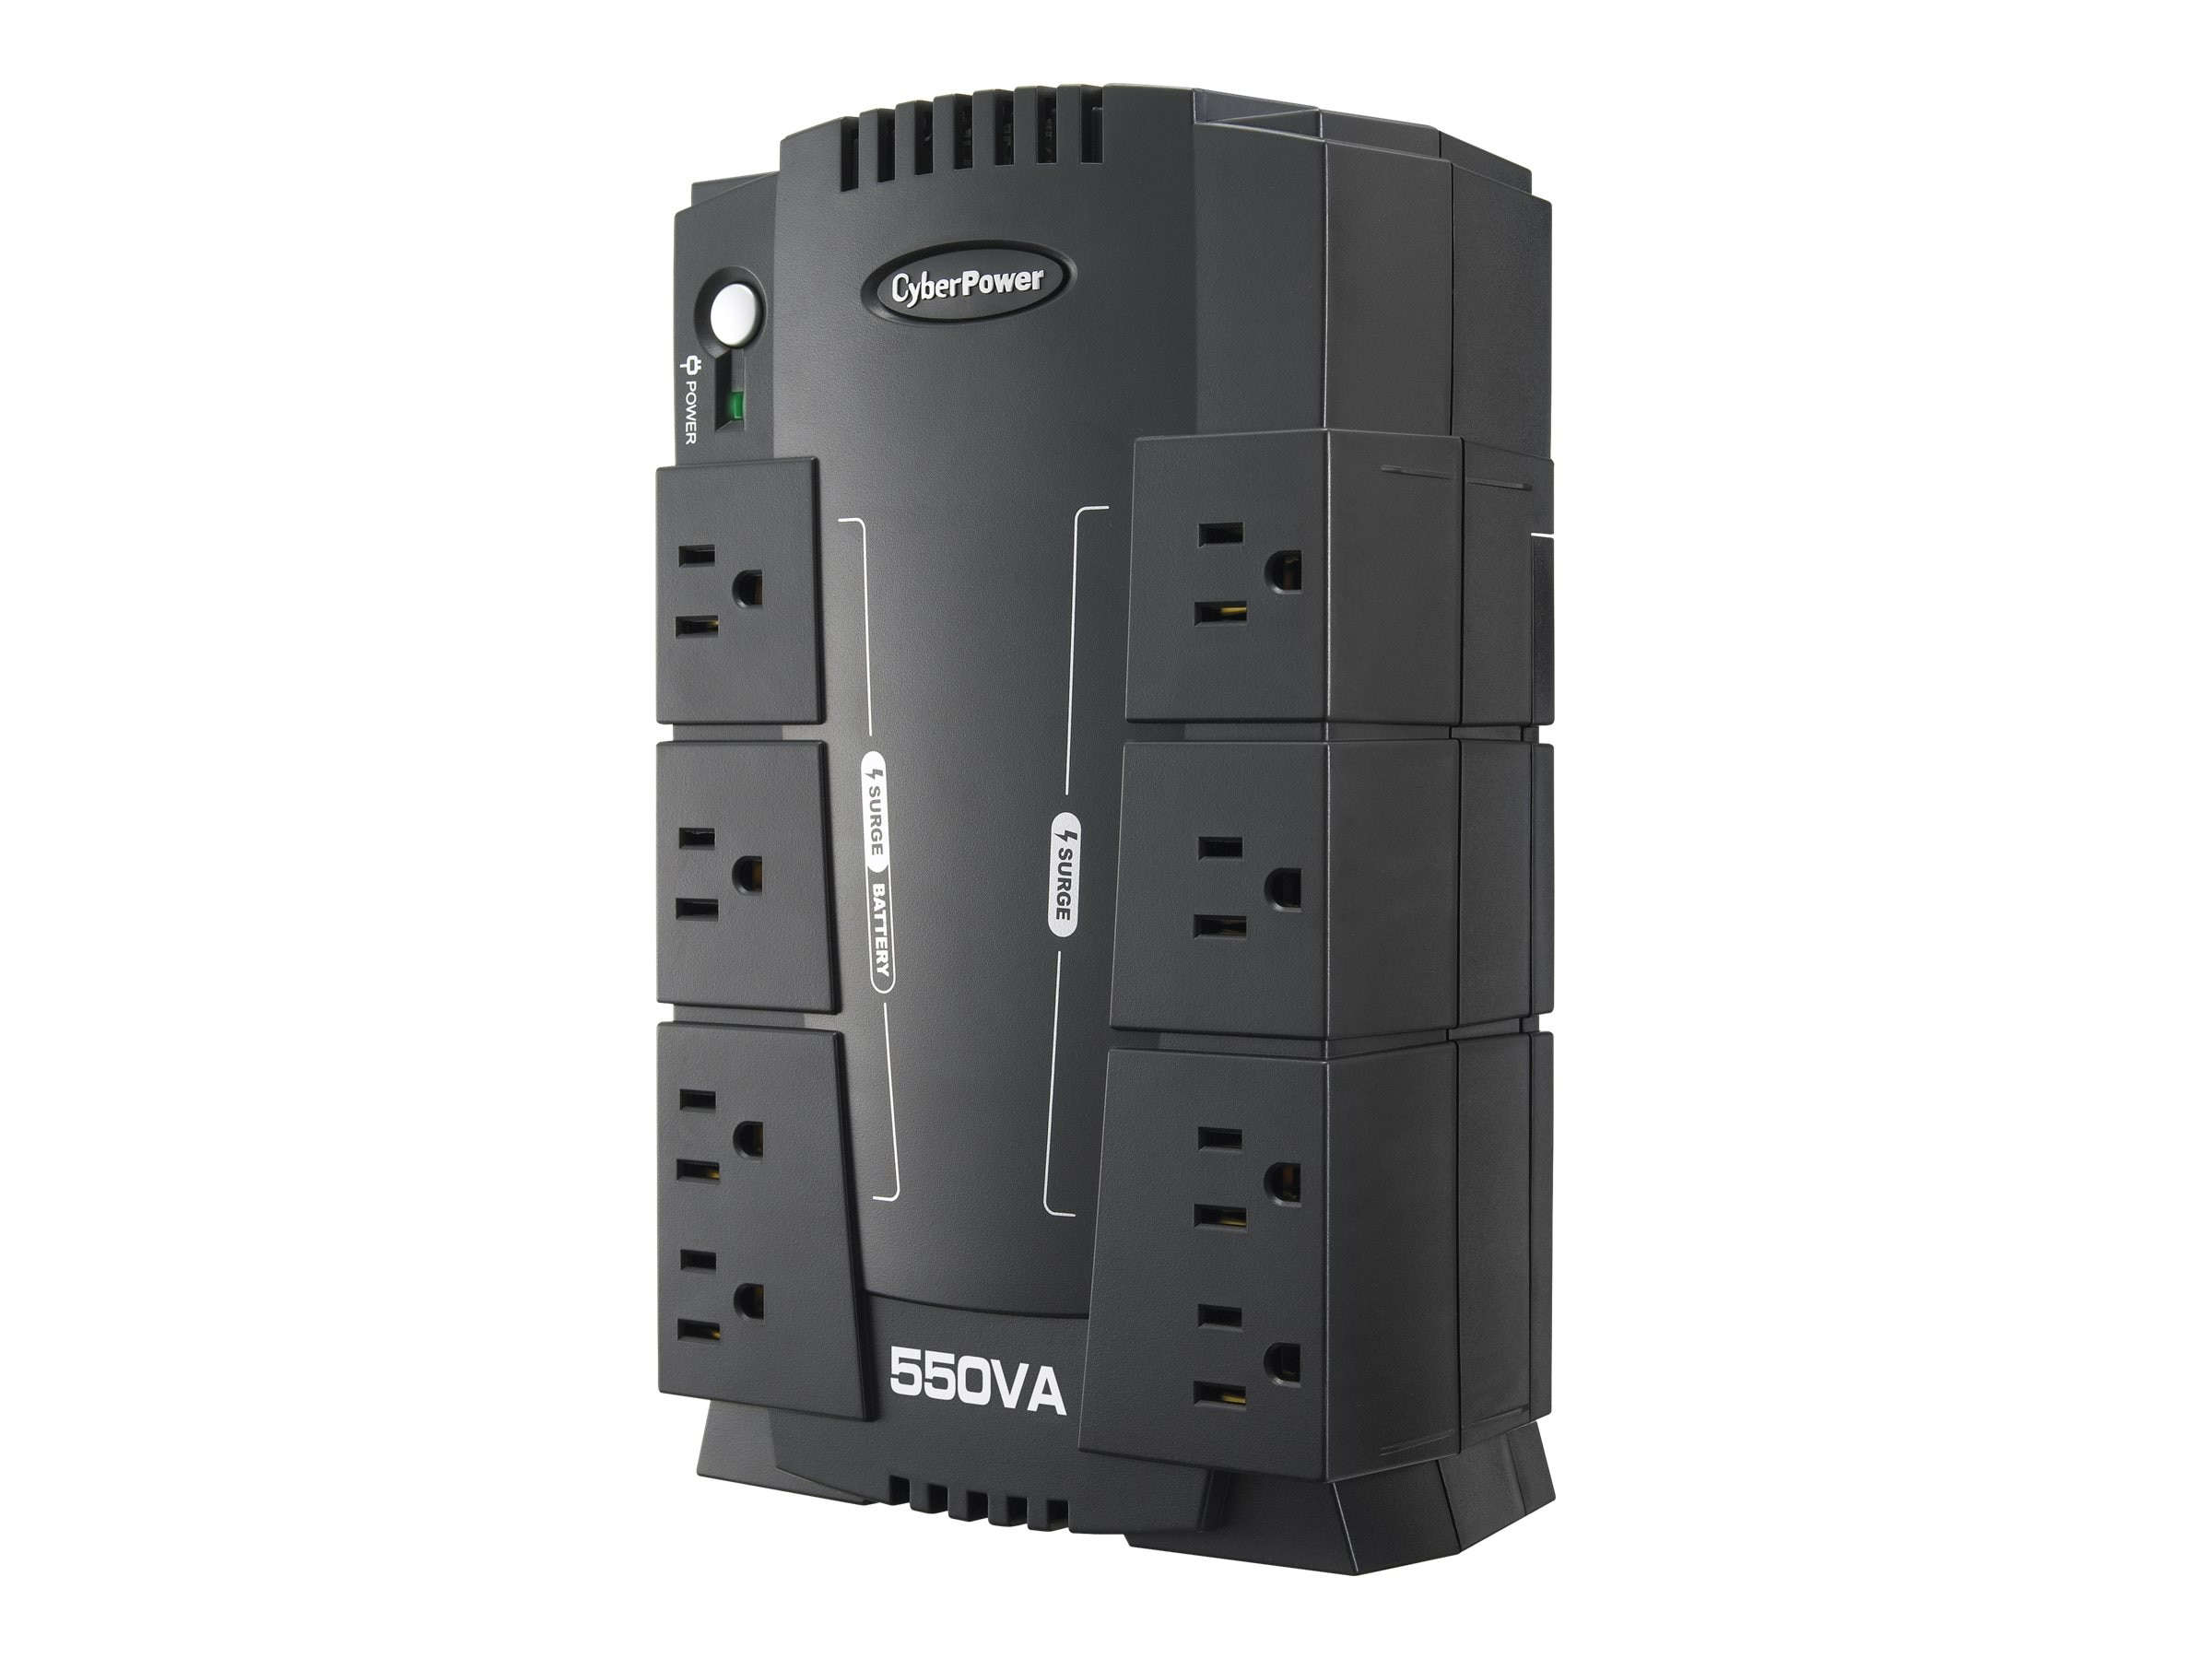 CyberPower 550VA Standby Green UPS (8) 5-15R Outlets USB, Management Software